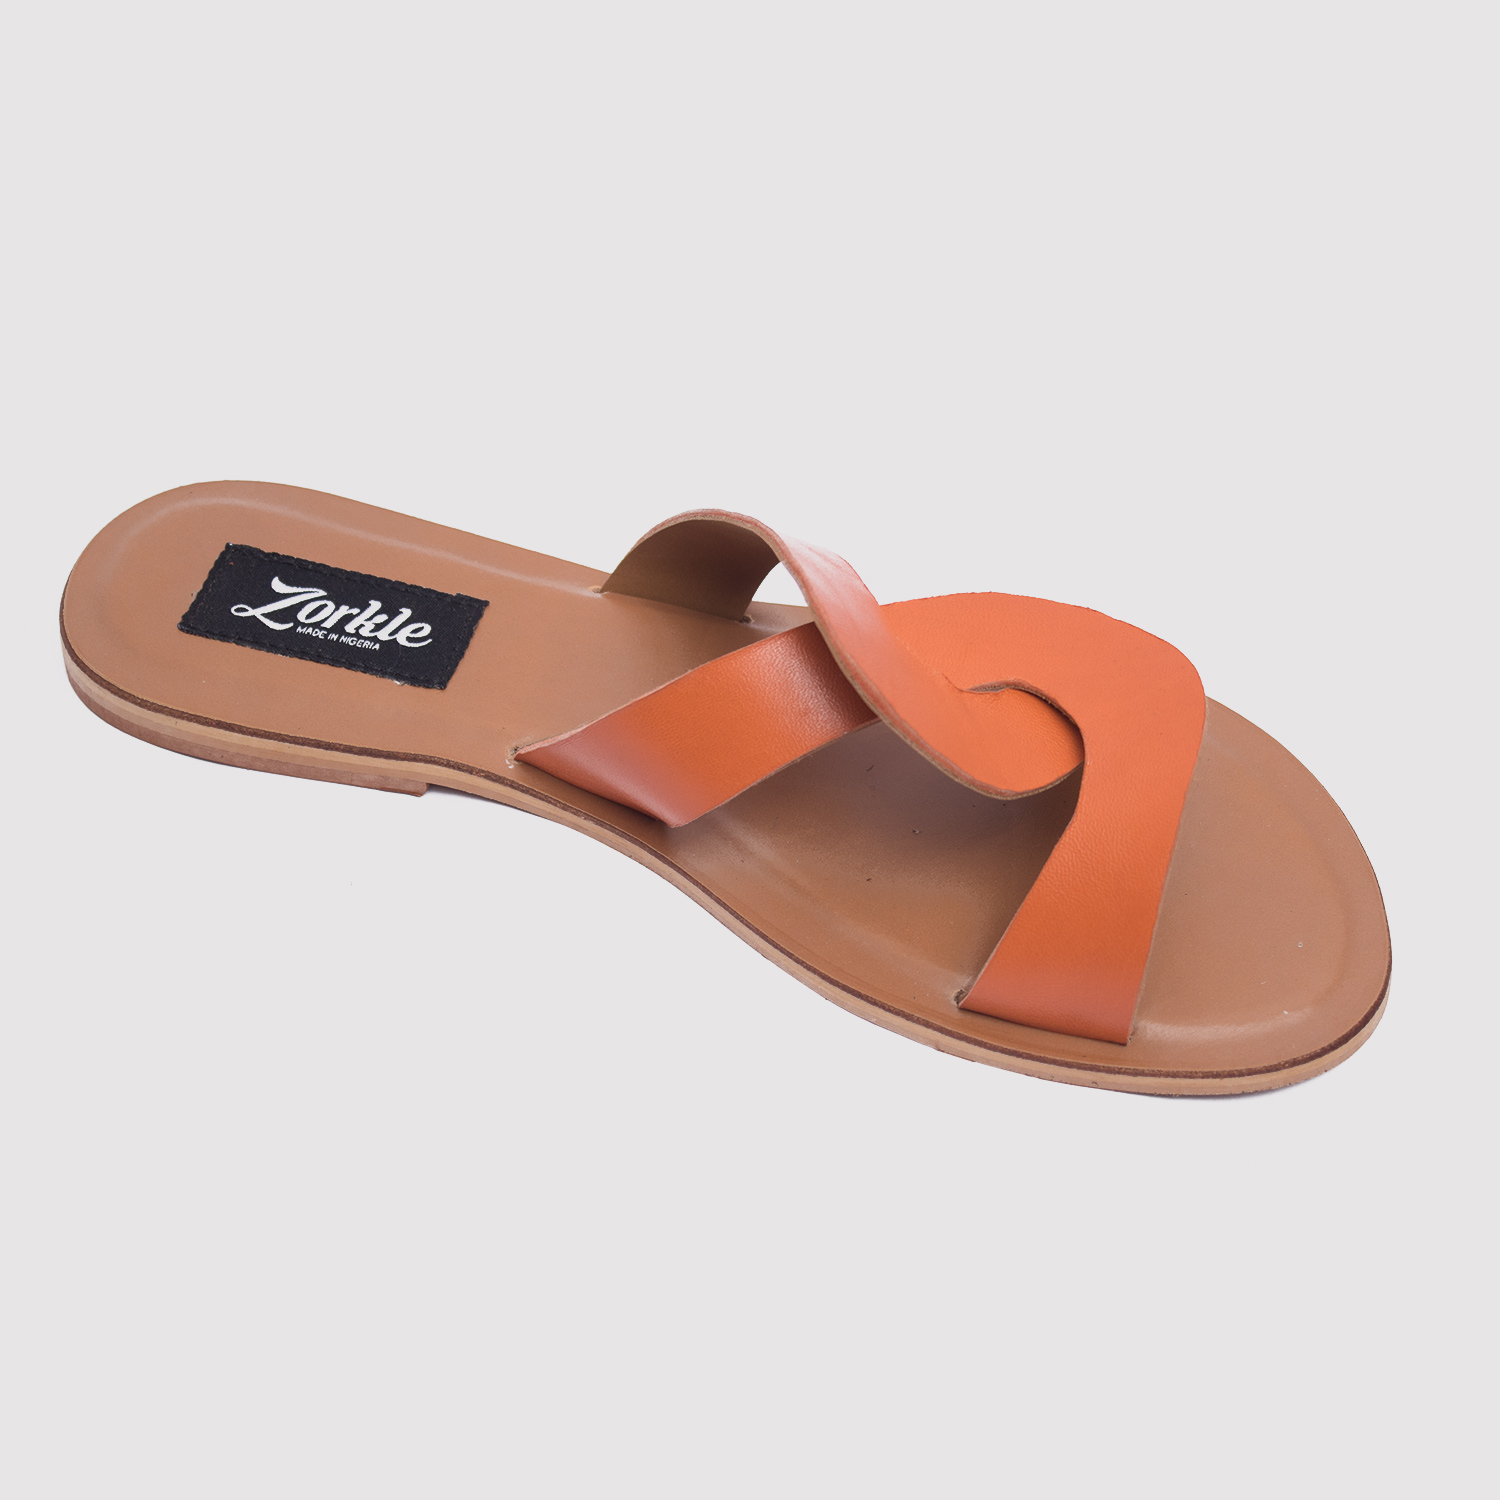 e581b6b9f8a4 ... CeeCee slippers brown leather zorkle shoes in lagos nigeria ...